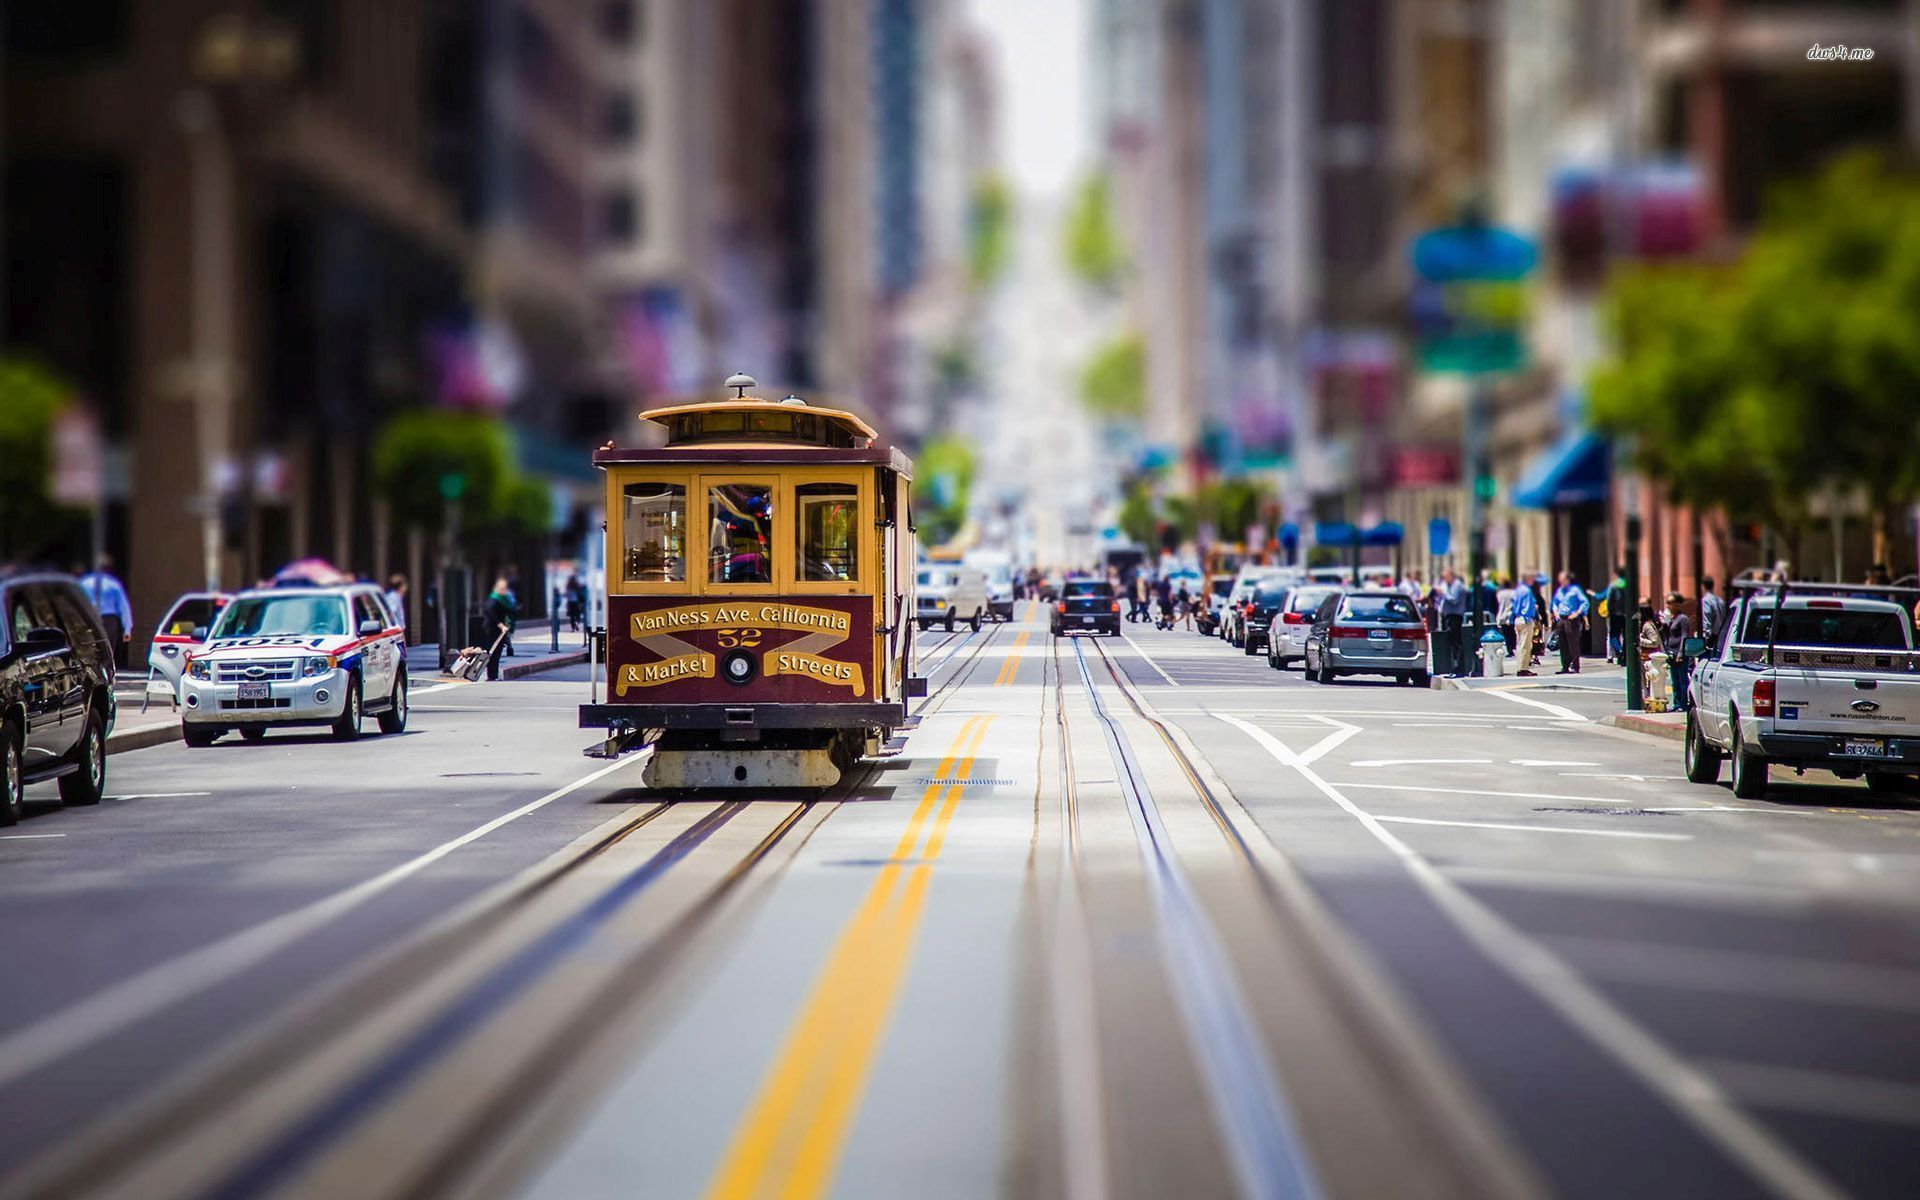 San Francisco Tilt Shift Background